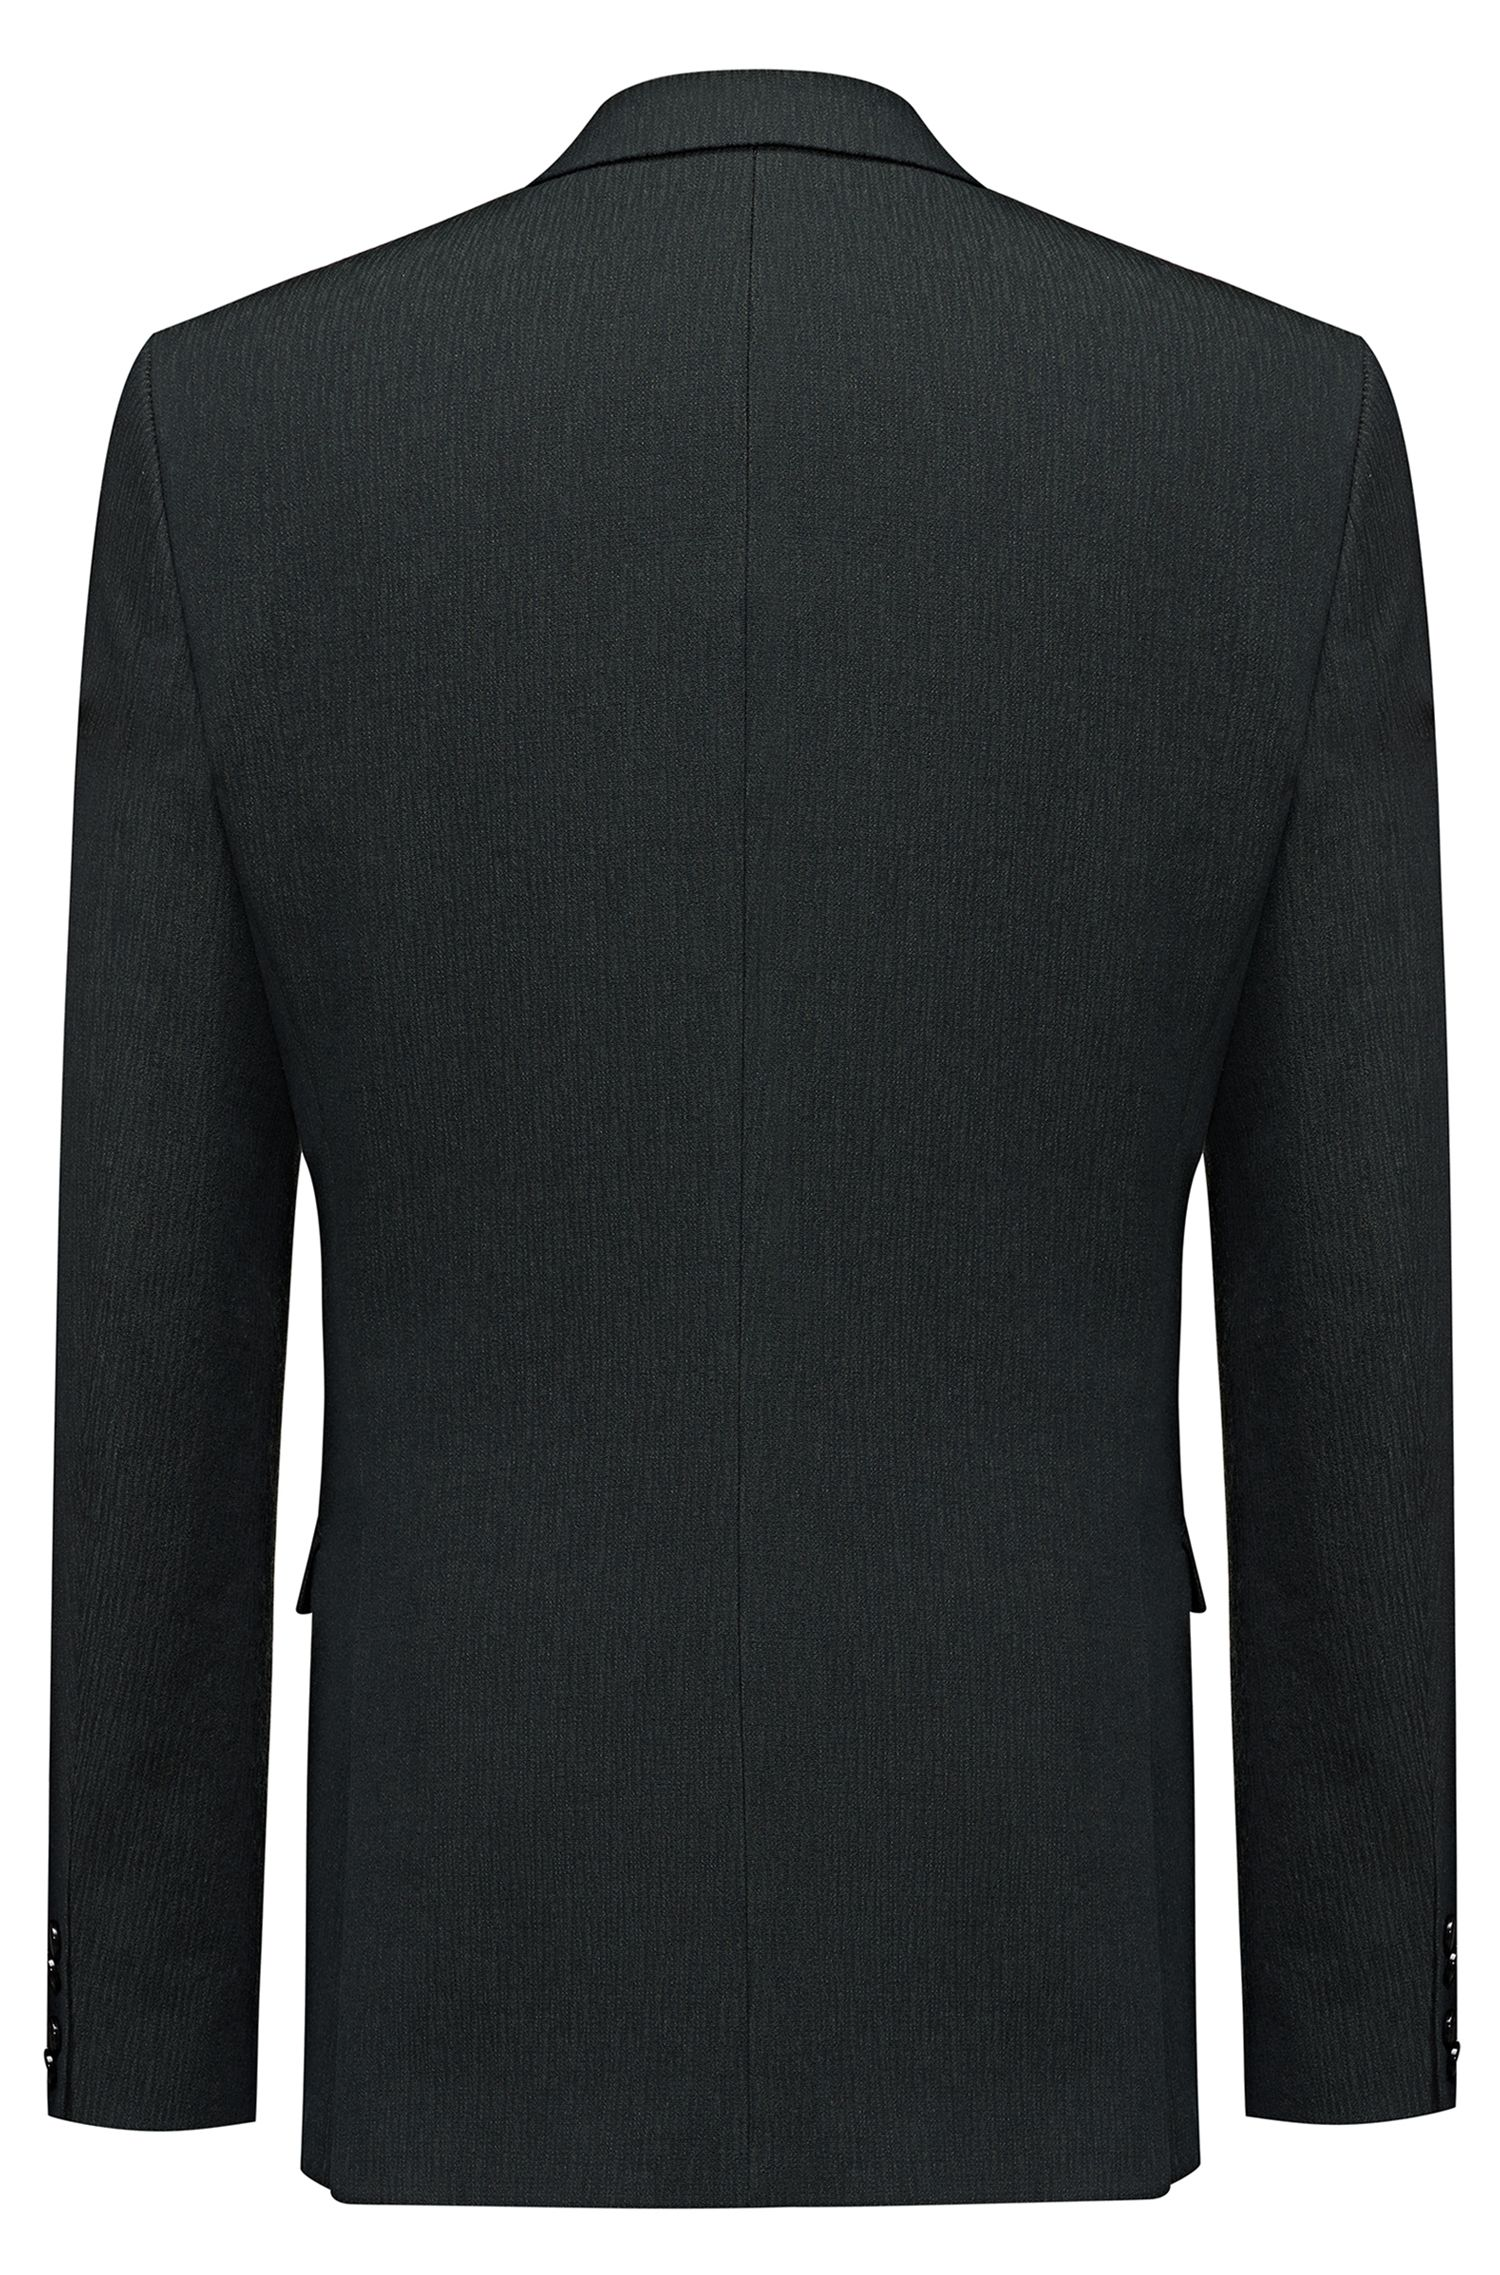 Extra-slim-fit jacket in a structured wool blend